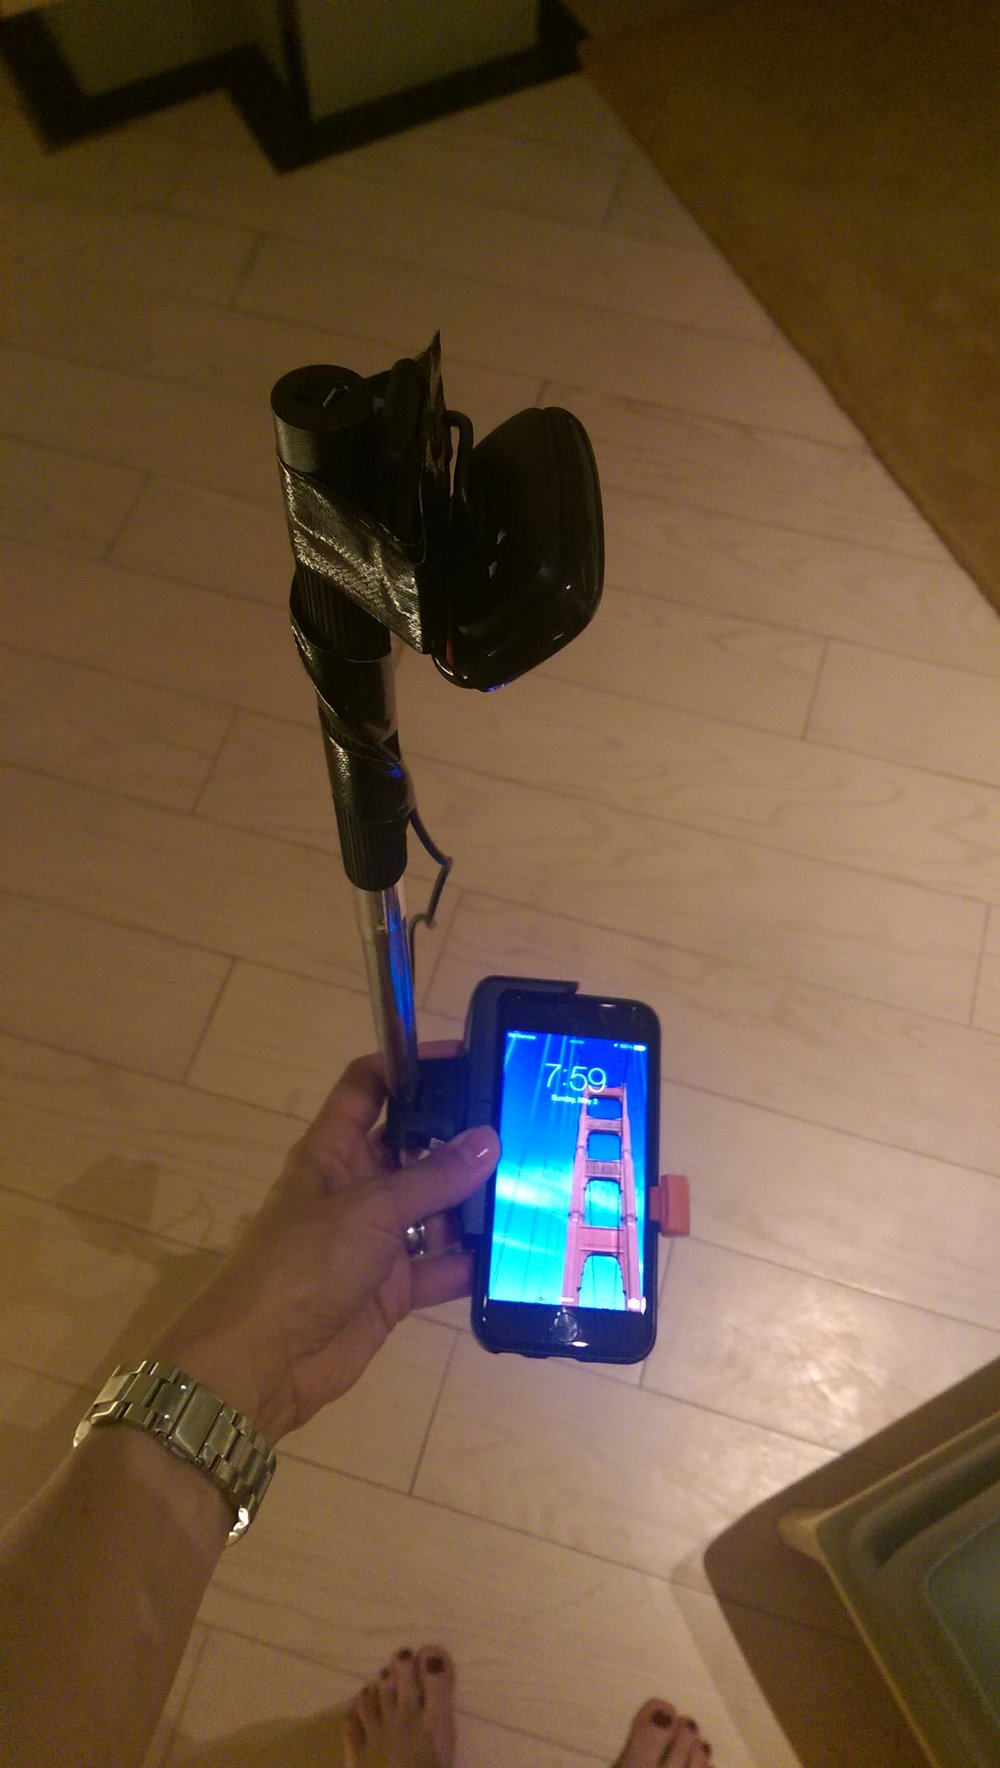 Mobile sled hack - made with a selfie stick, webcam and tape, during a moment of desperation in Indonesia! During usability testing, the participants used their phones in this sled, and observers watched the live stream nearby.